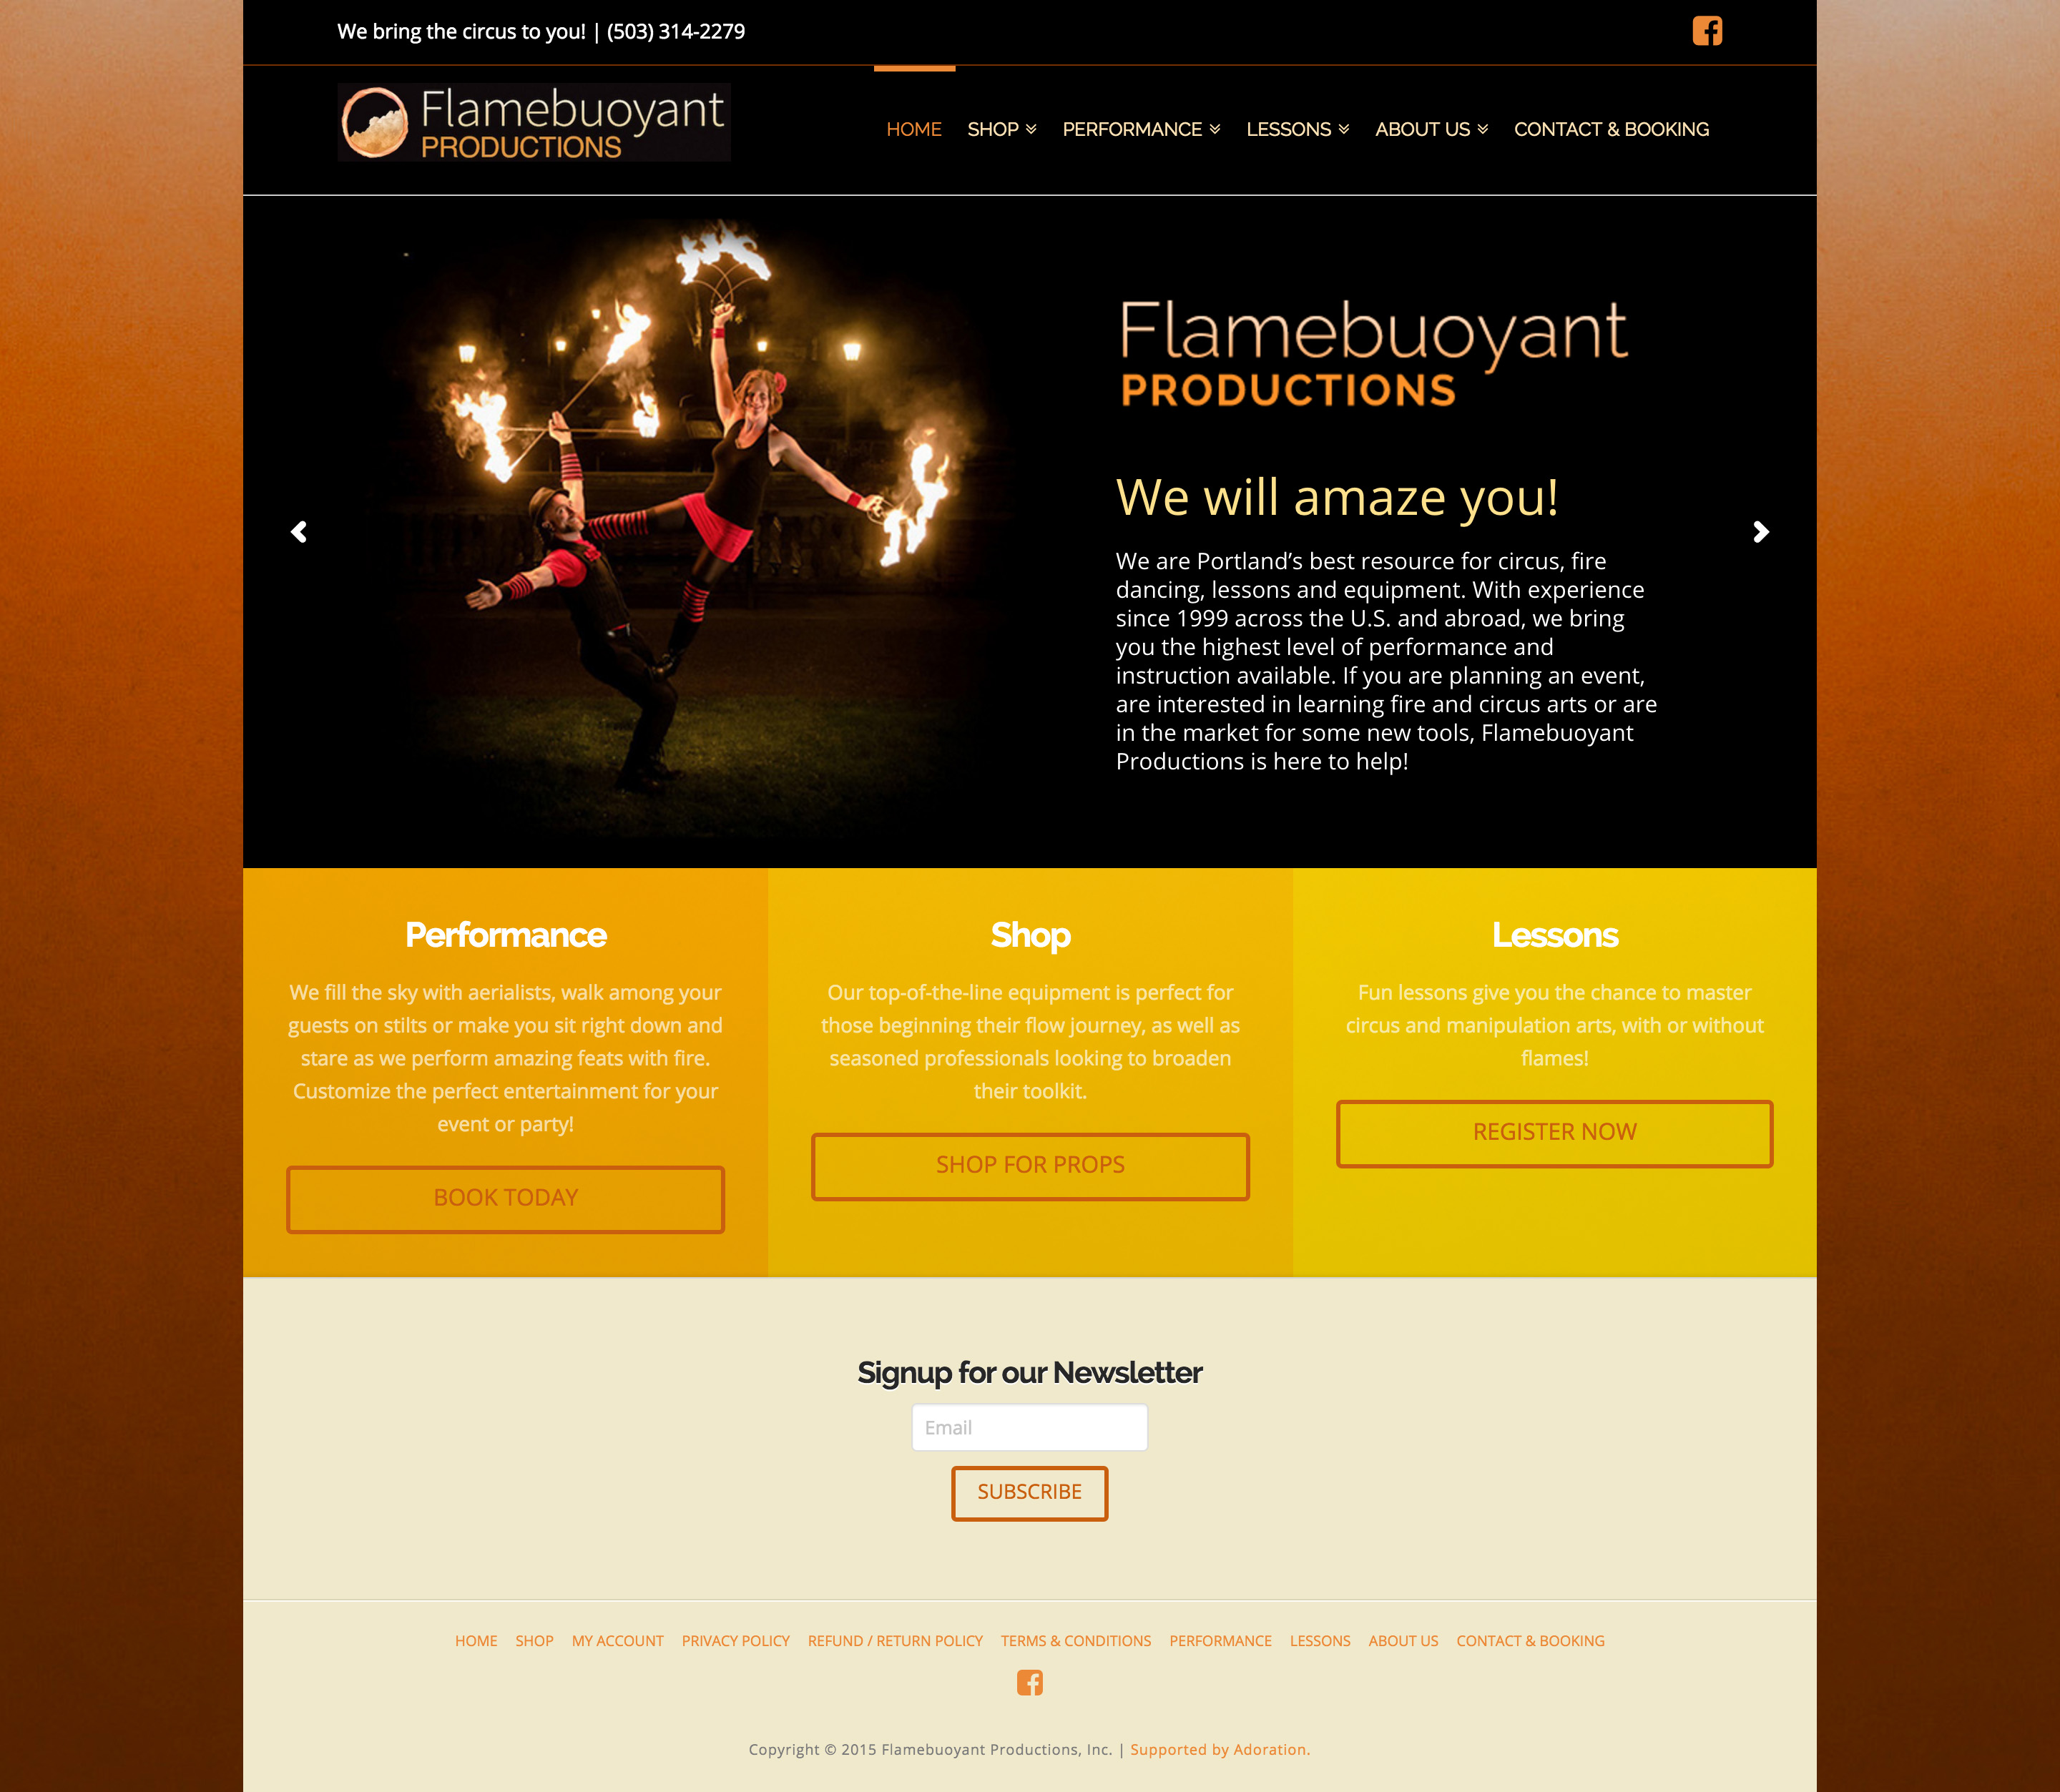 Flamebuoyant Productions Home Page